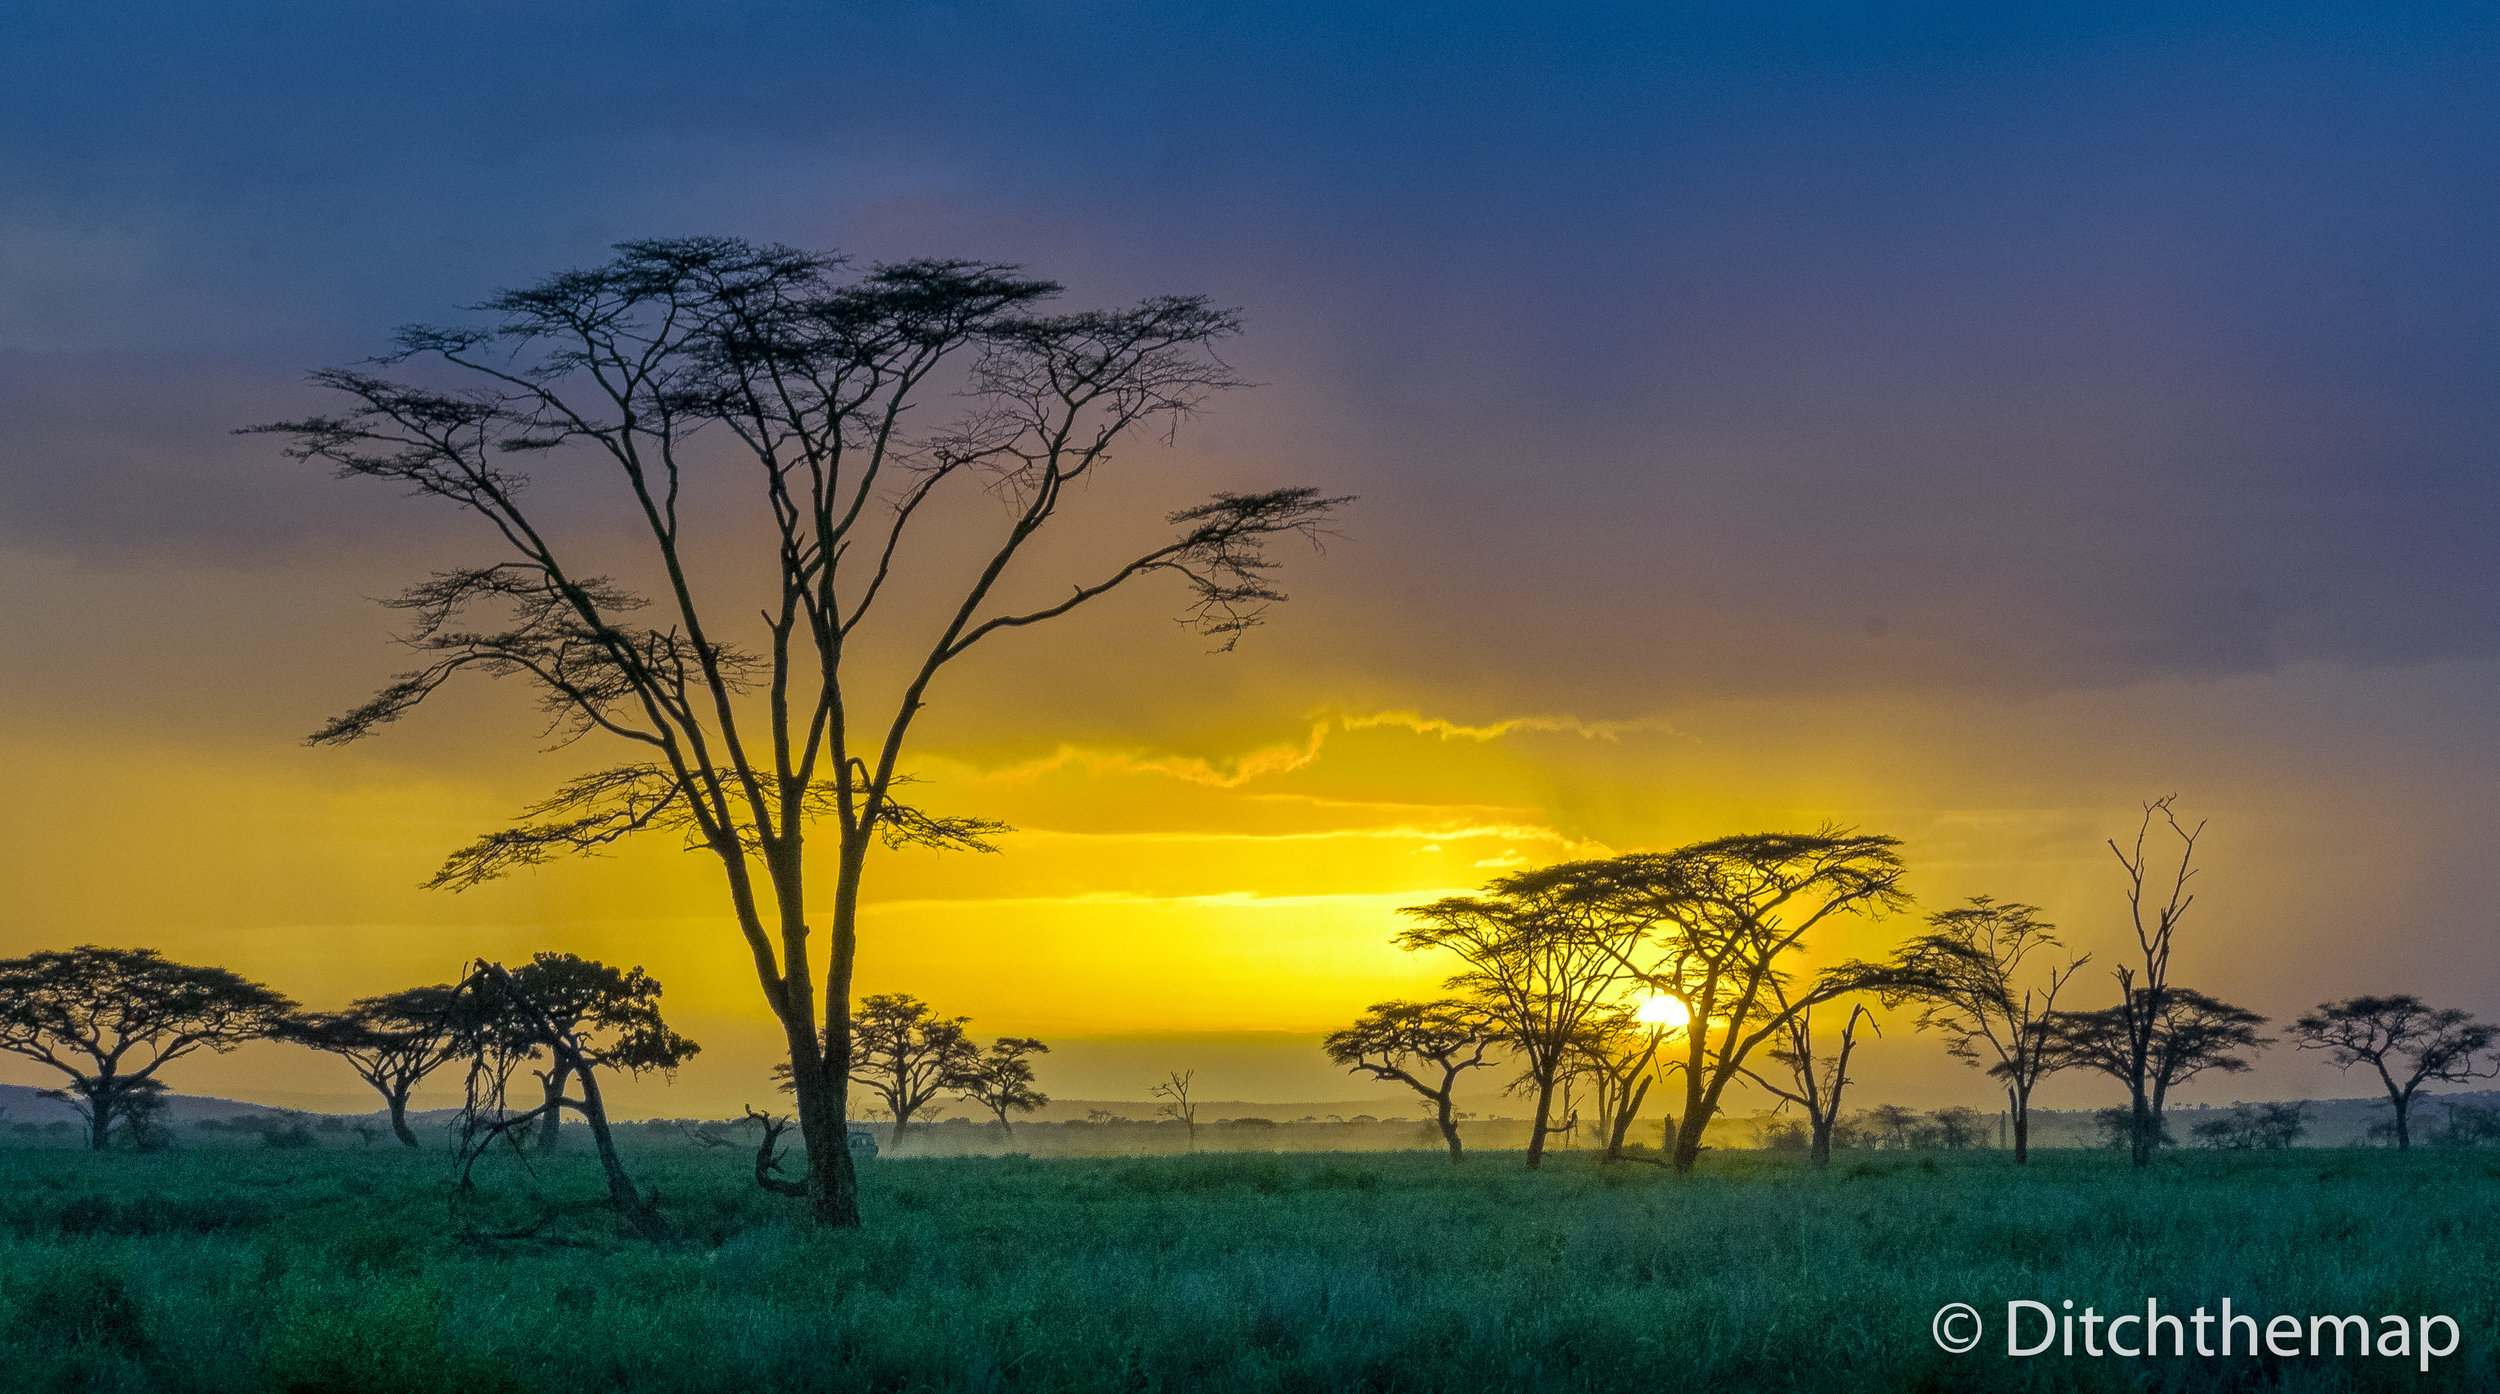 Beautiful sunset in Africa over large trees